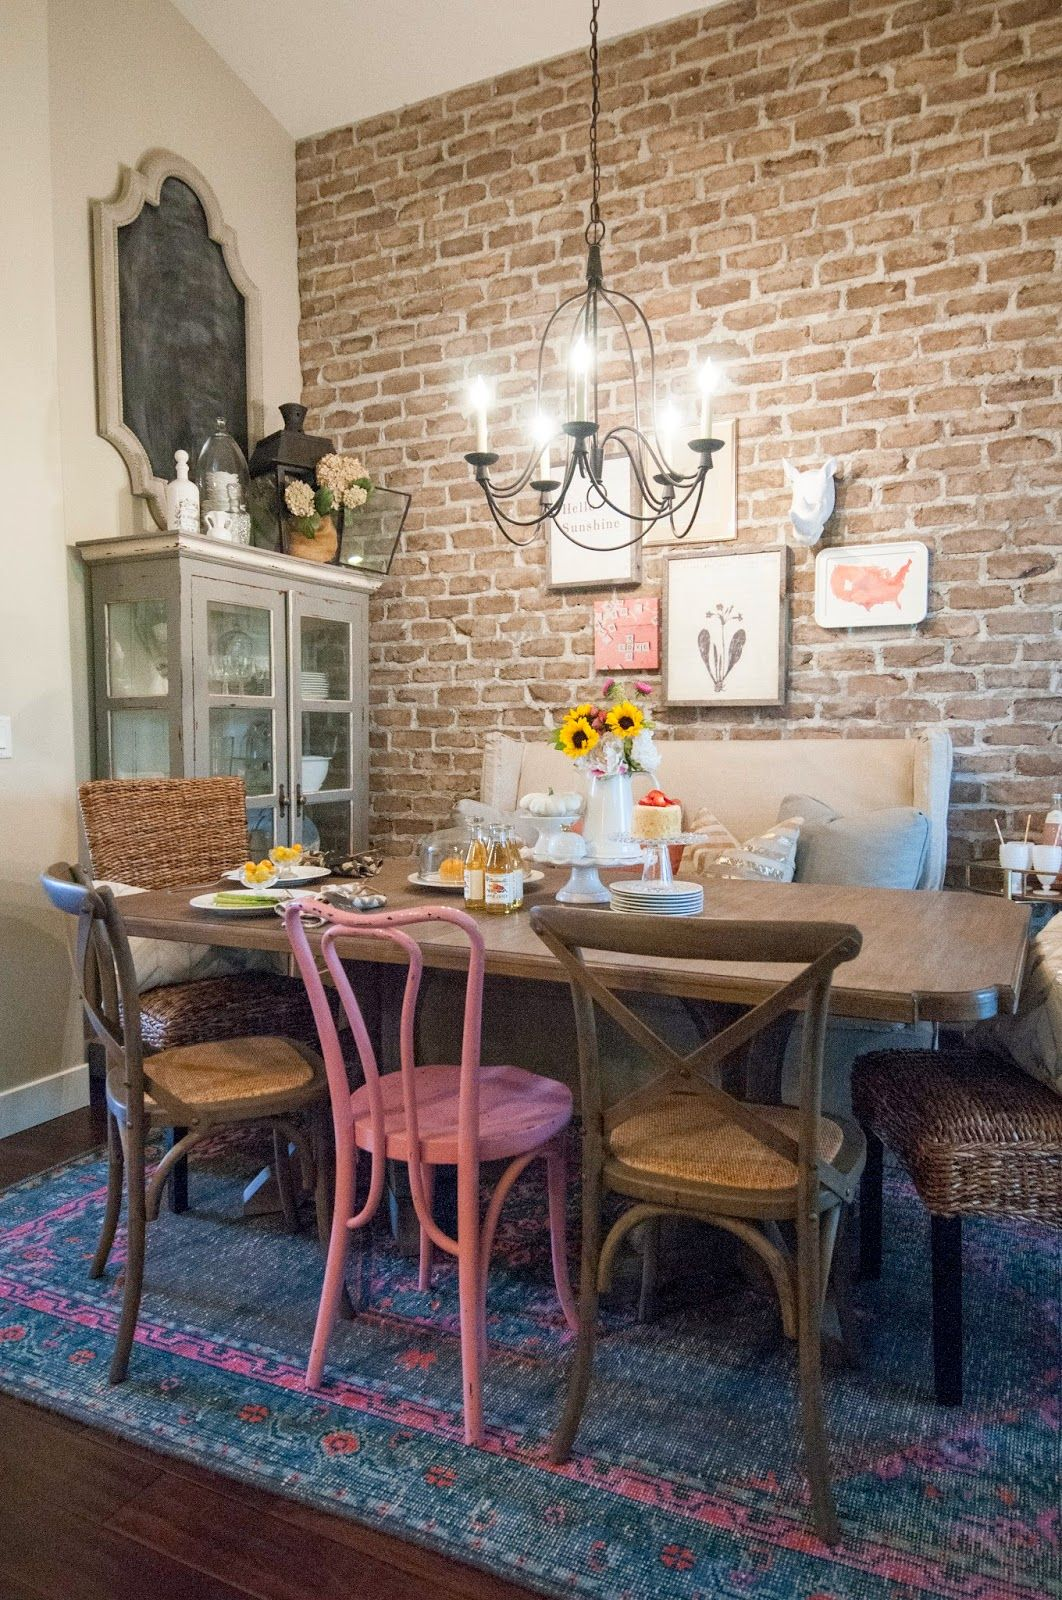 the brick dining room | The Black Goose Design blog- Eclectic dining room with ...